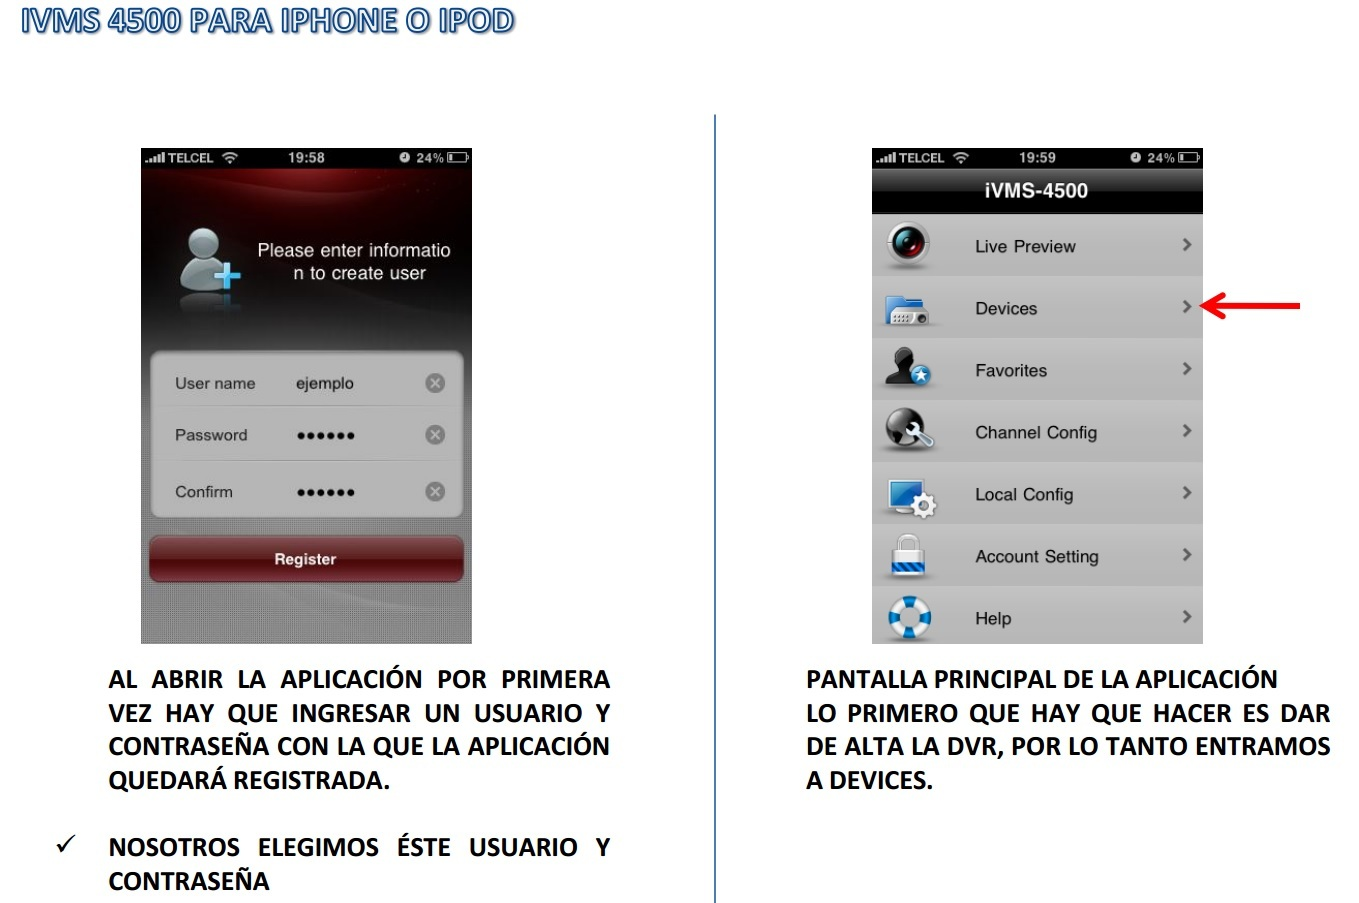 how to import photos from iphone to windows 8 ivms 4500 para iphone ipod y taringa 4500